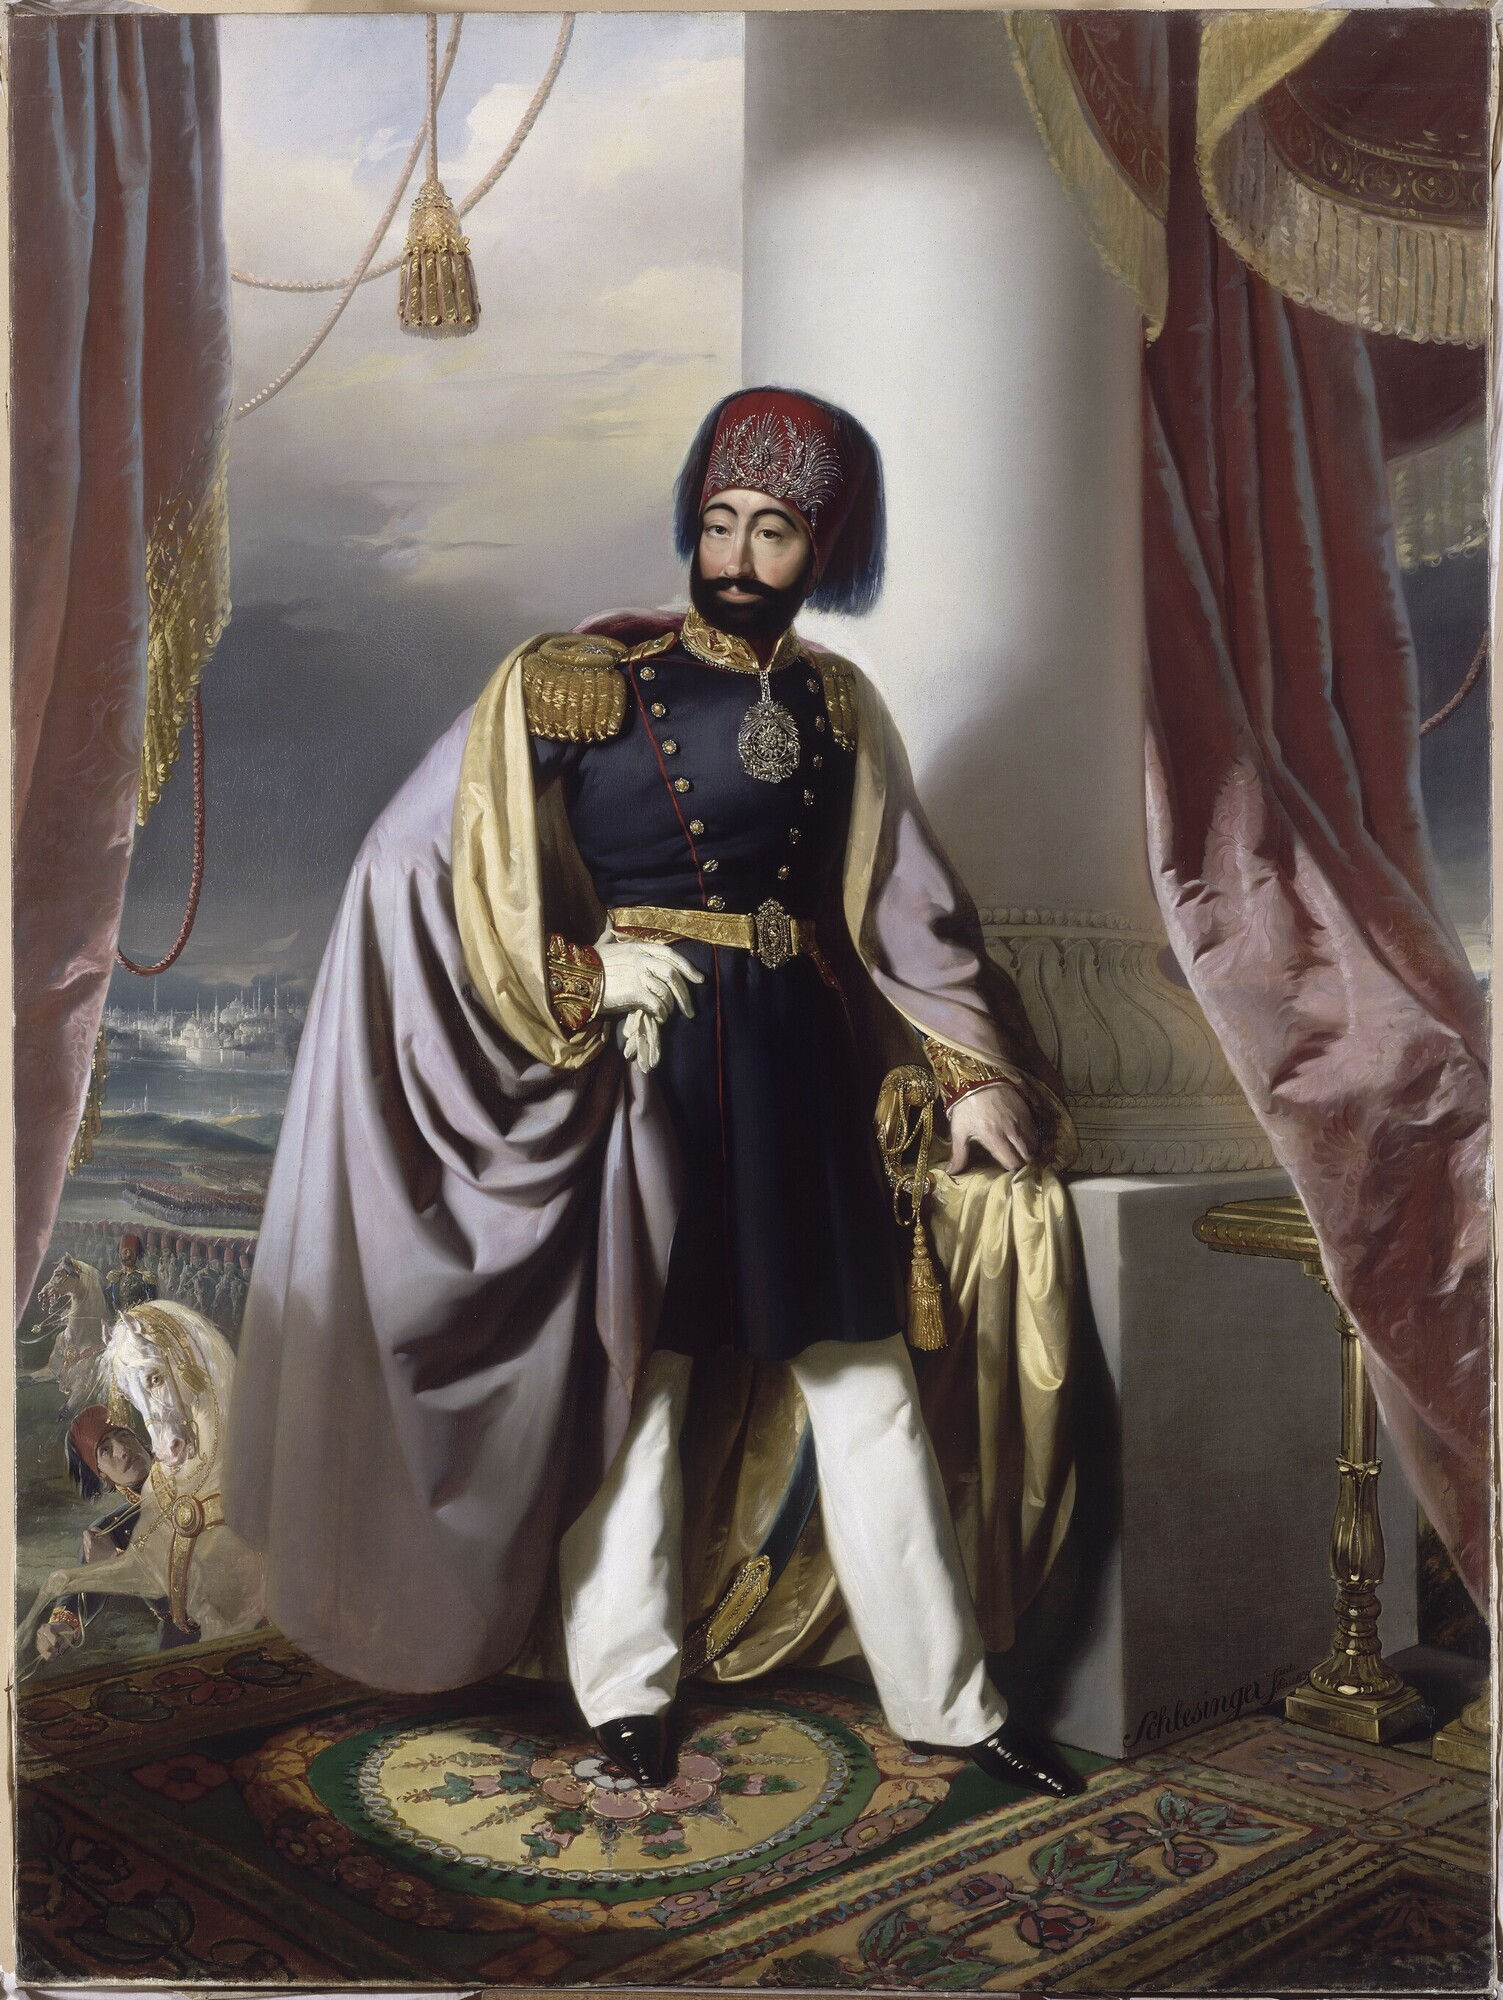 http://upload.wikimedia.org/wikipedia/commons/d/d8/Mahmud_II.jpg